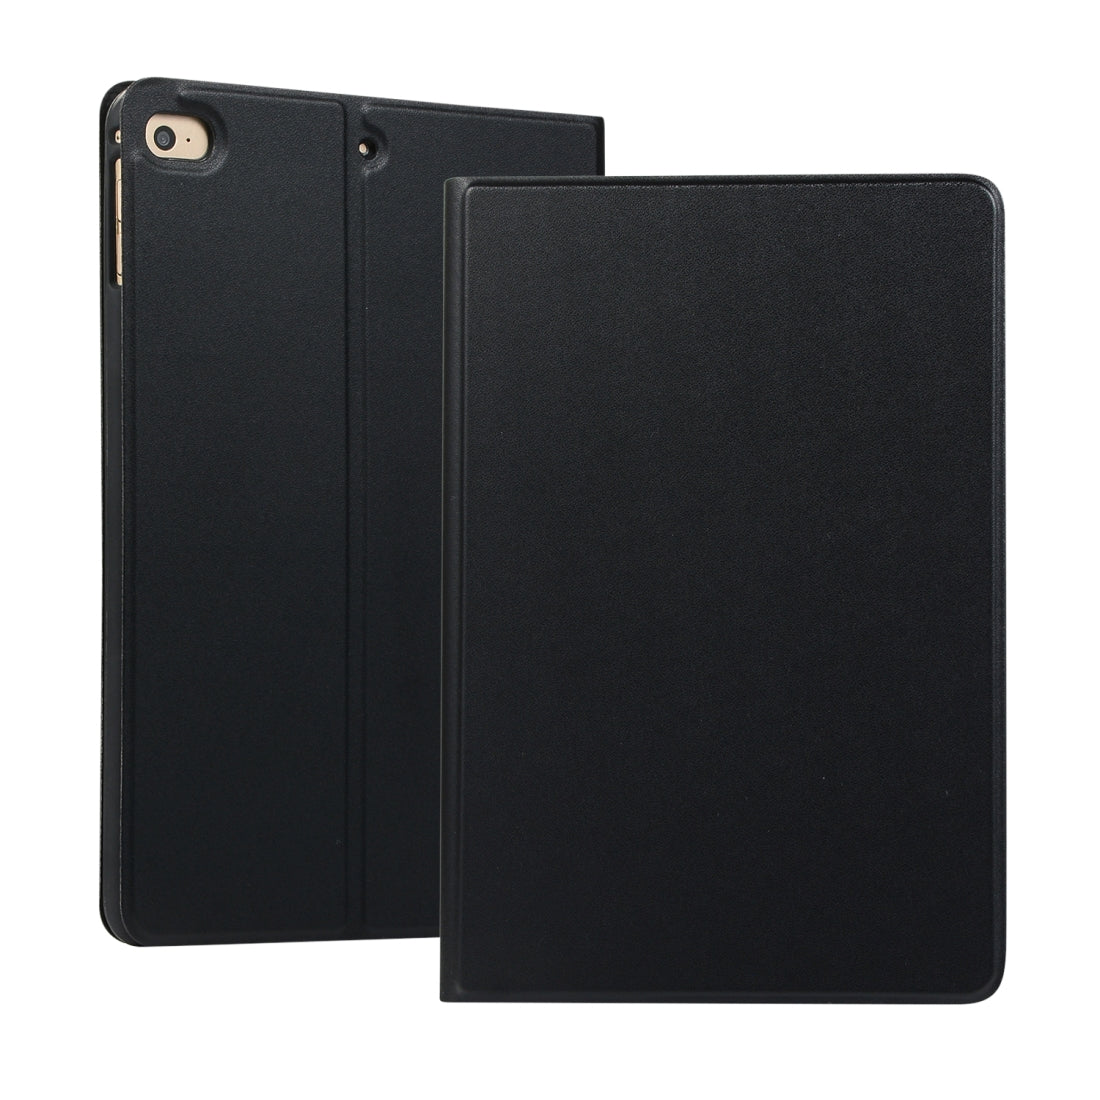 Universal Spring Texture TPU Protective Case for iPad Mini 4 / 5, with Holder(Black)